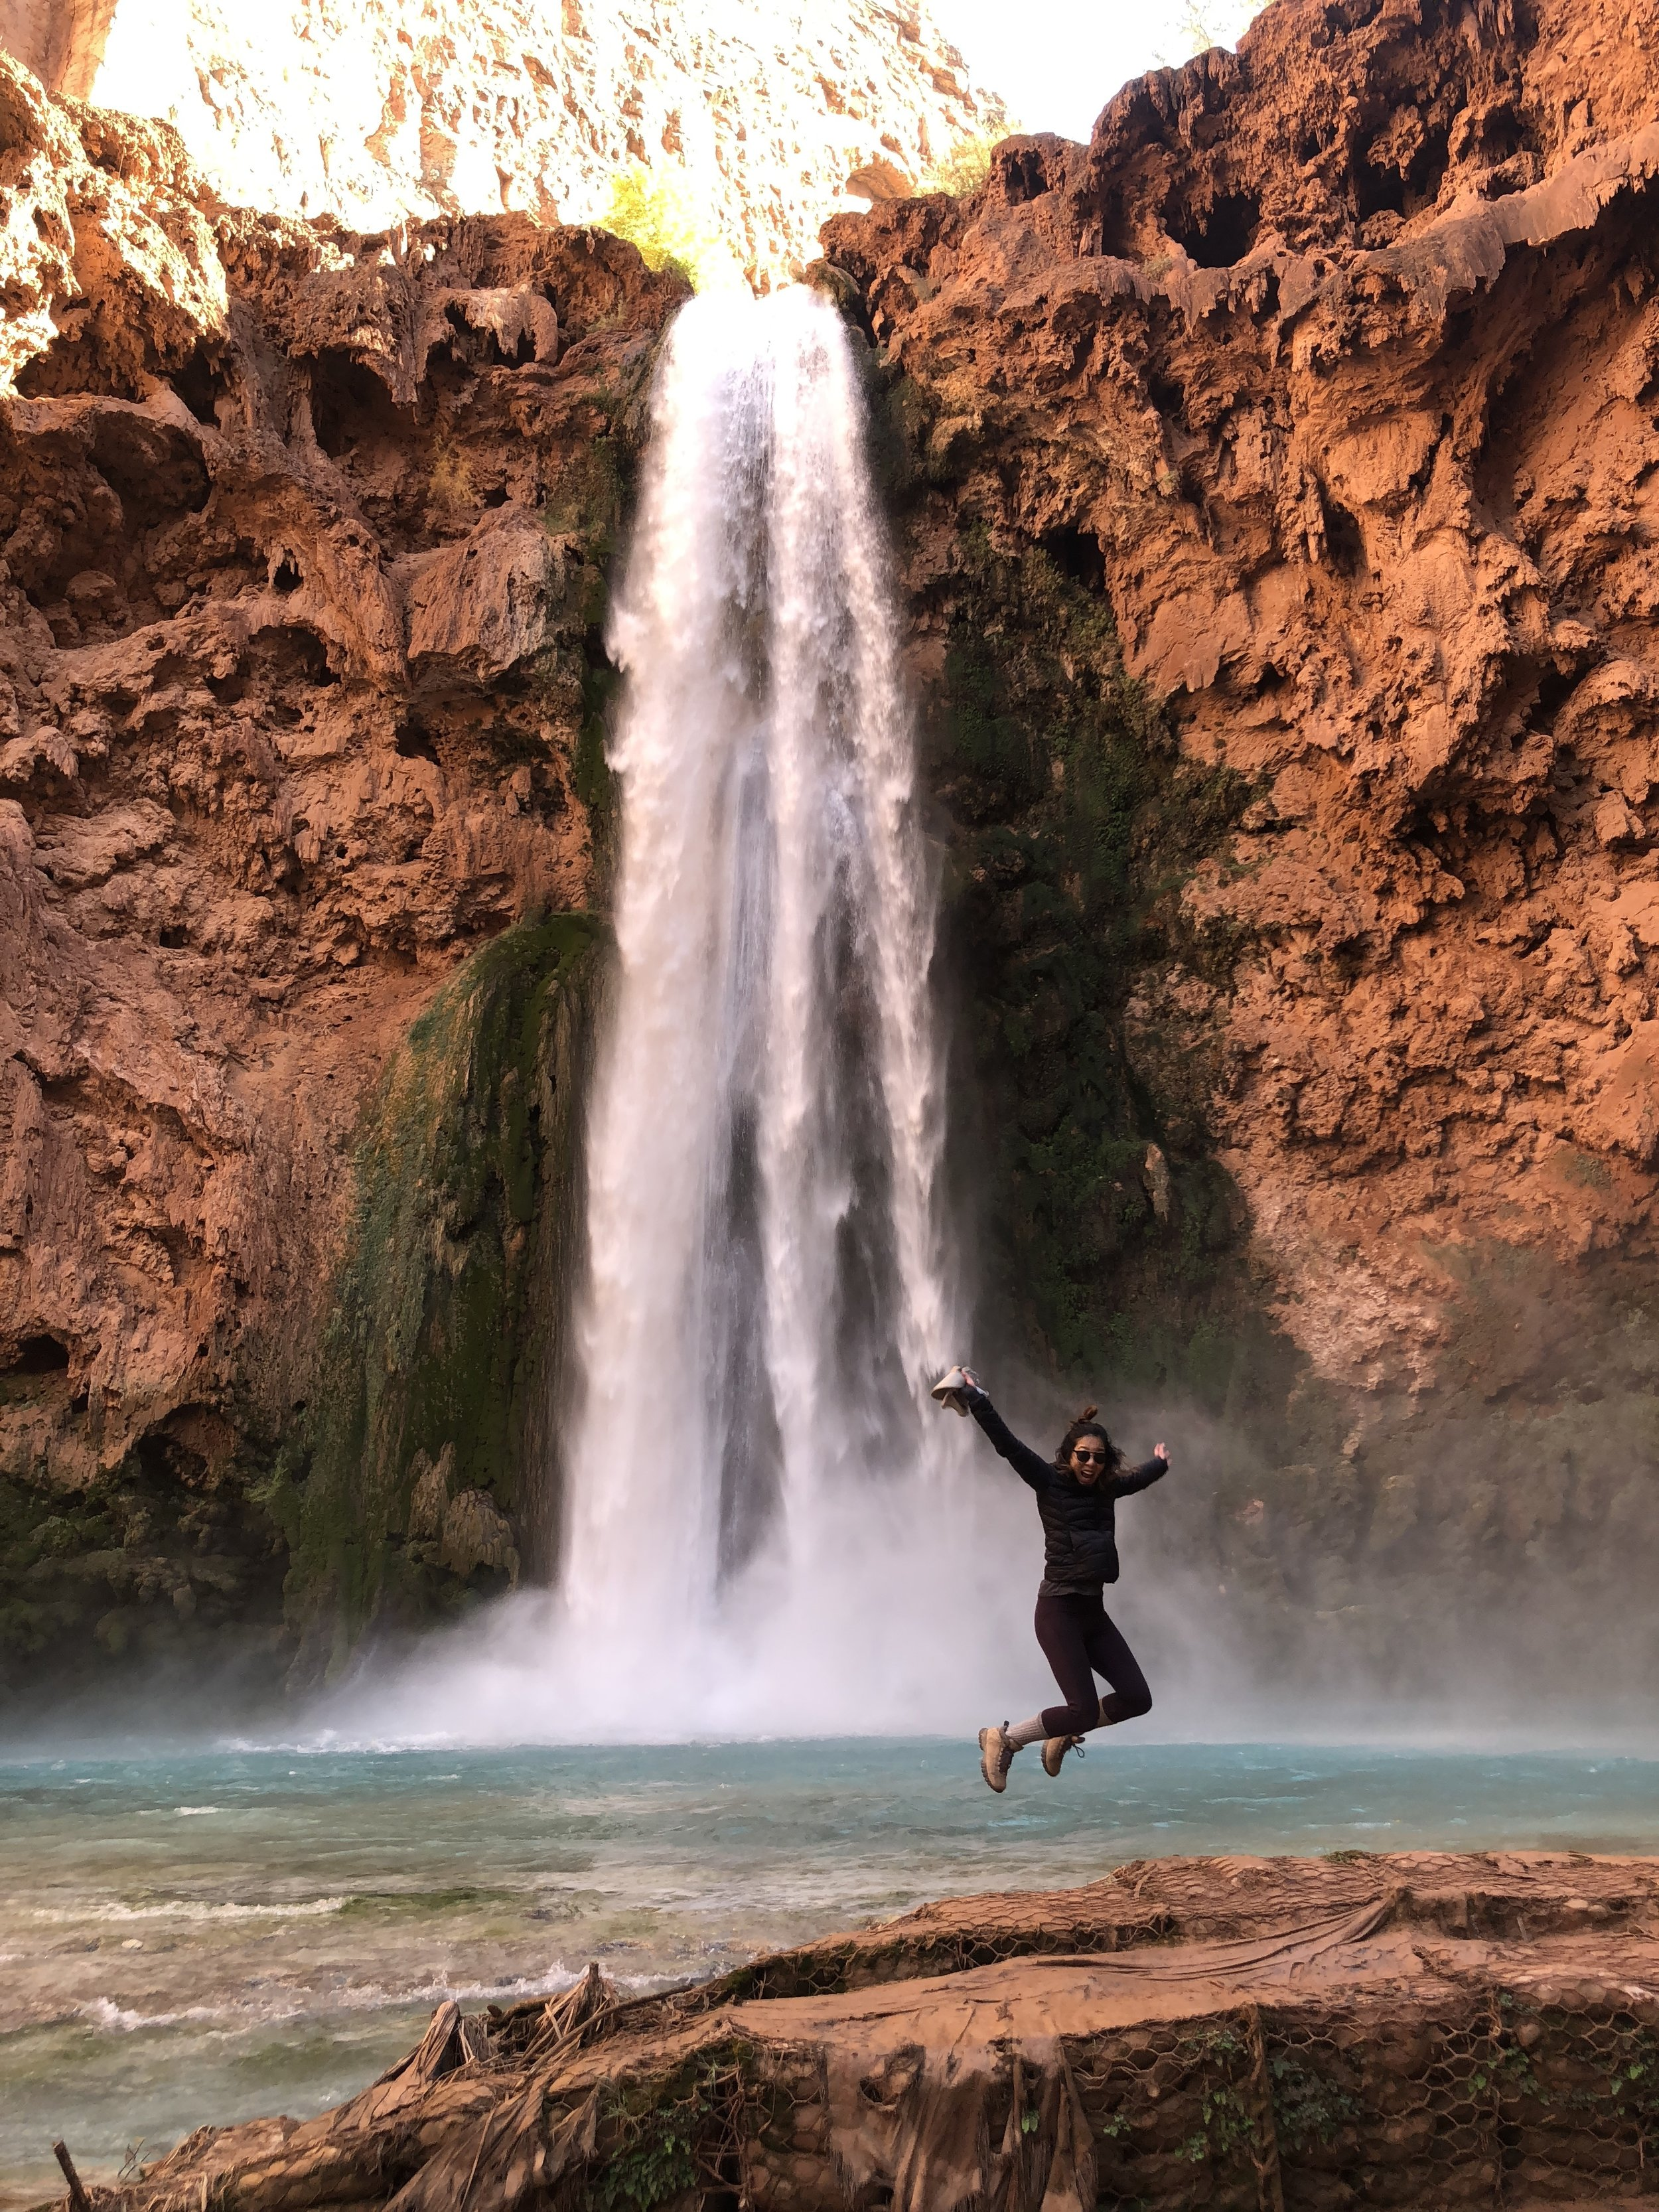 Havasupai, November 2018. That shit was hard. But super dope and so worth it.